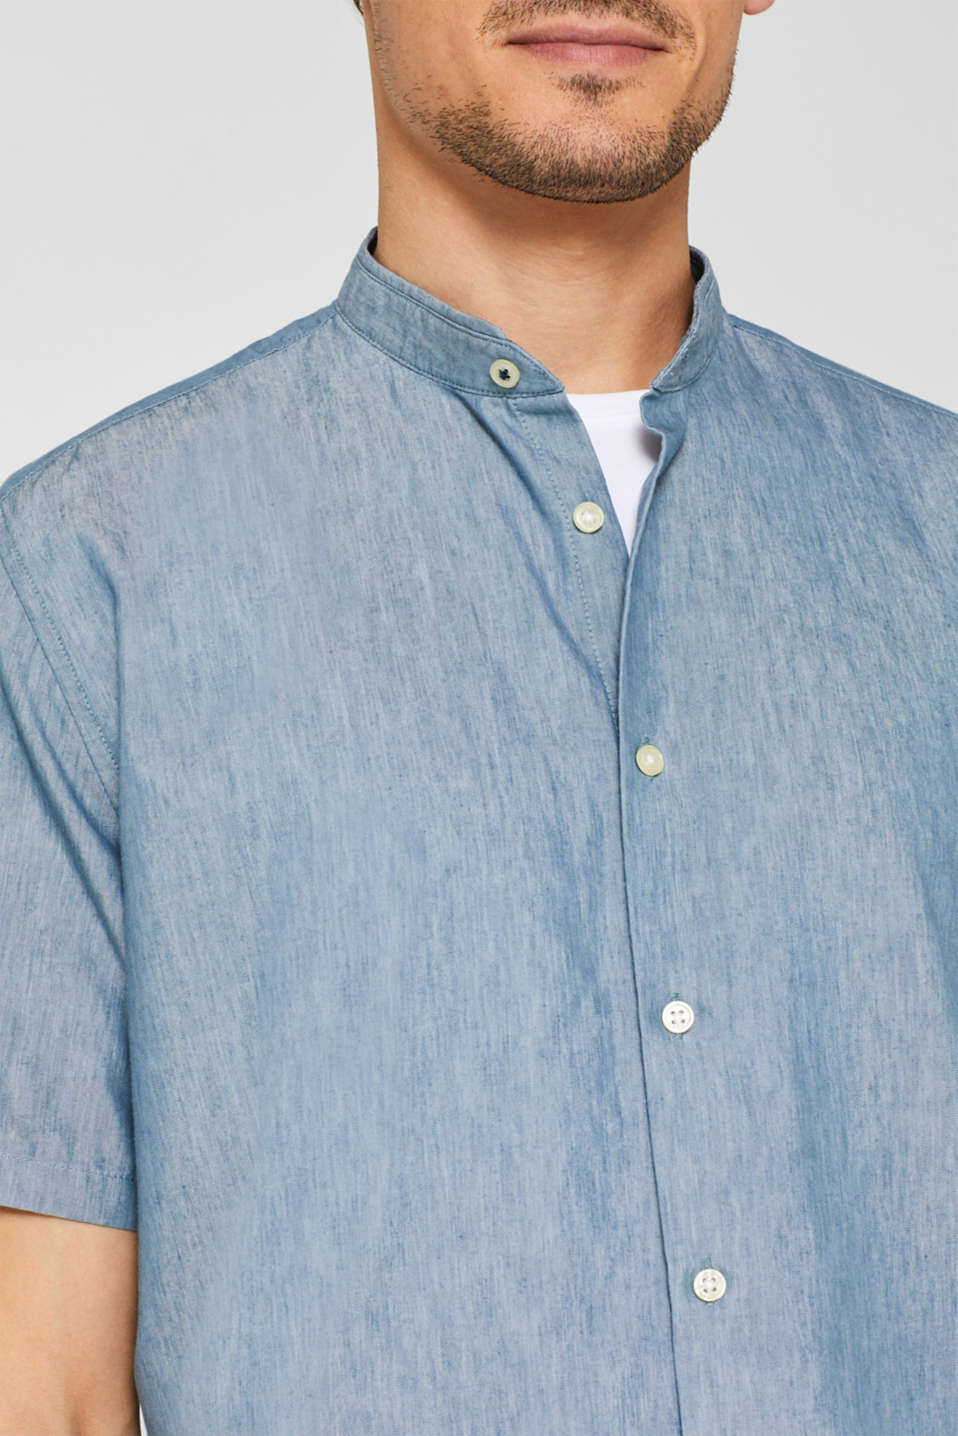 Shirts woven Slim fit, PETROL BLUE, detail image number 2